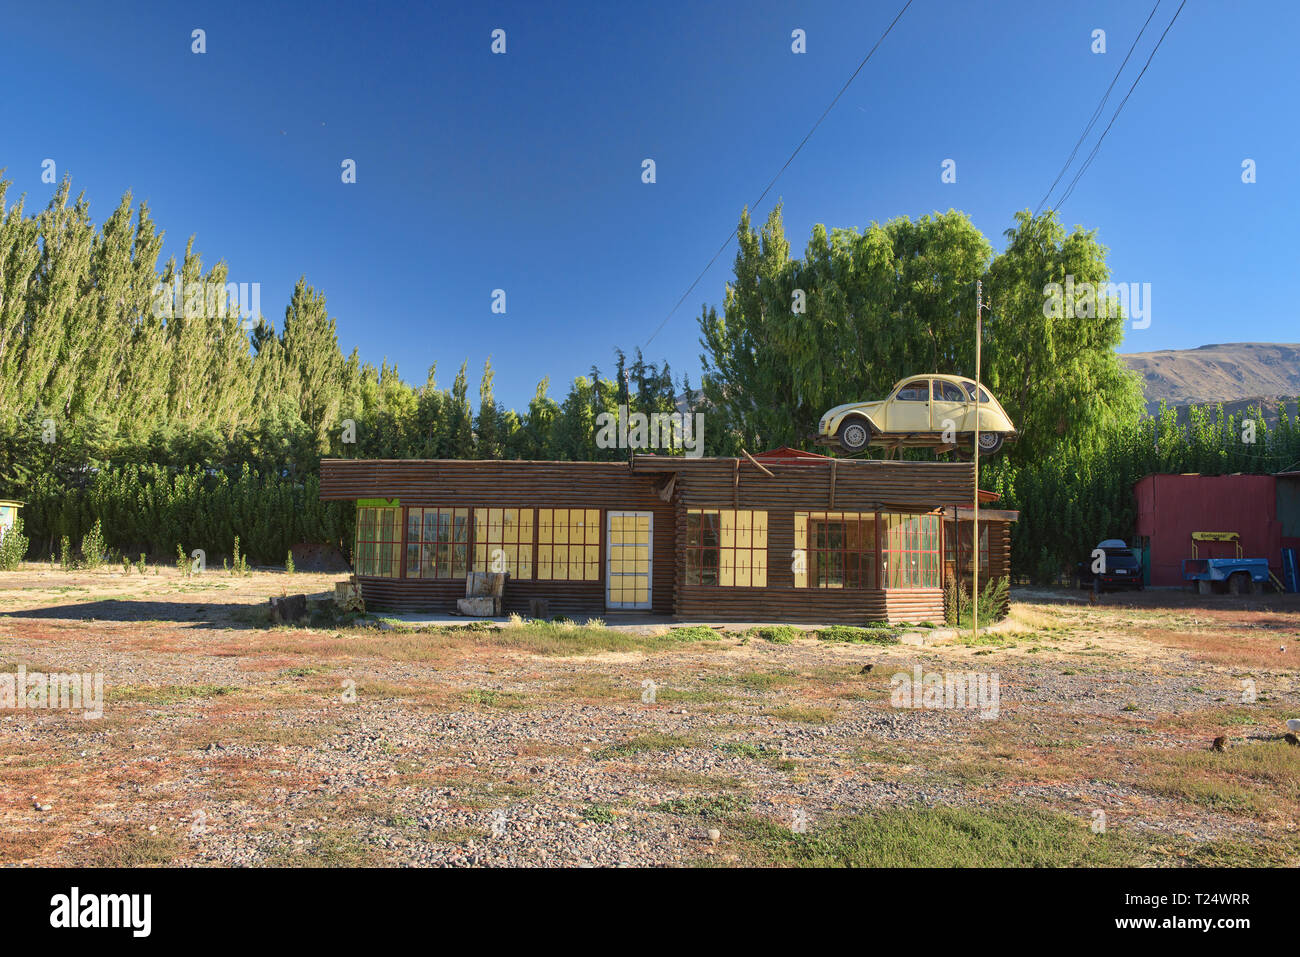 Car on top of a house, Chile Chico, Patagonia, Chile - Stock Image